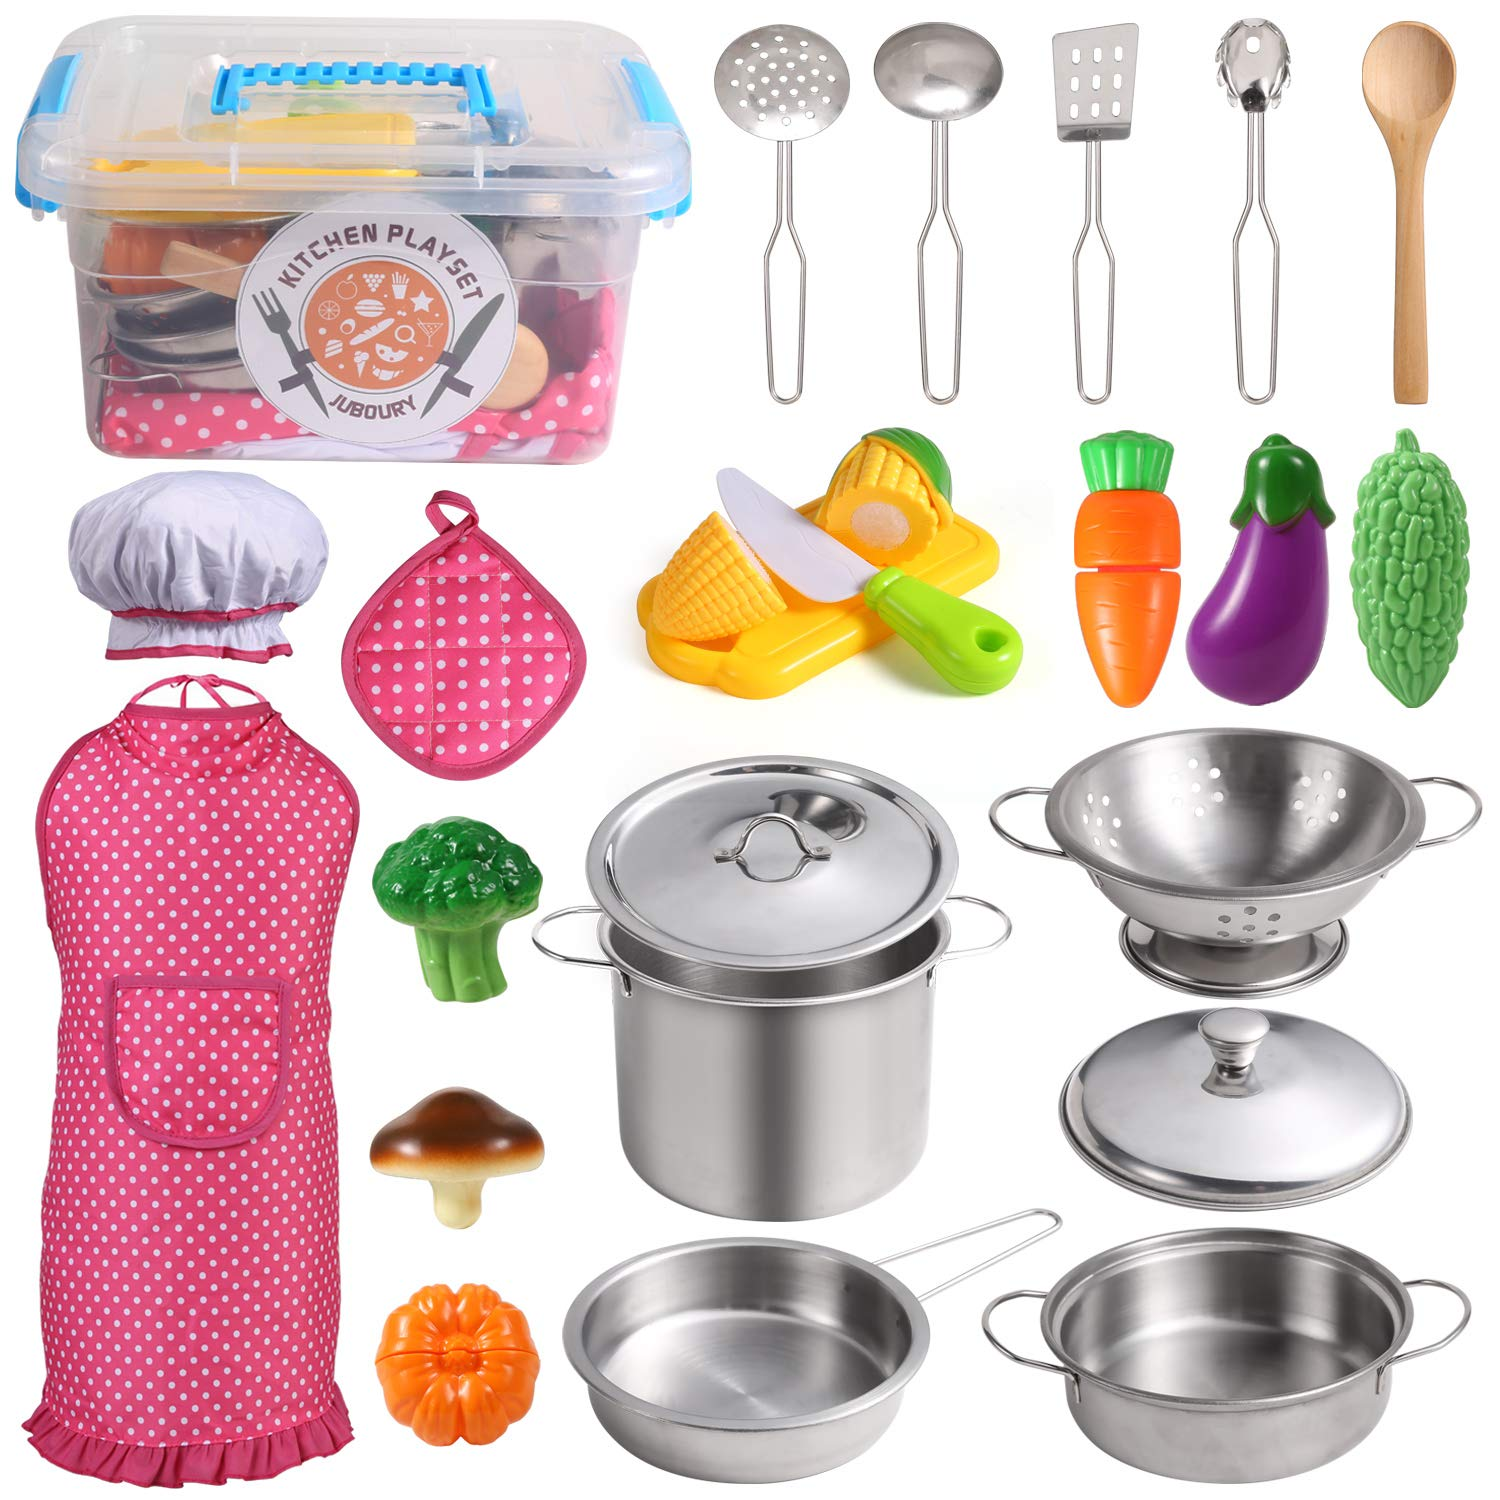 Juboury Kitchen Pretend Play Toys with Stainless Steel Cookware Pots and Pans Set, Cooking Utensils, Apron & Chef Hat, Cutting Vegetables for Kids, Girls, Boys, Toddlers by Juboury